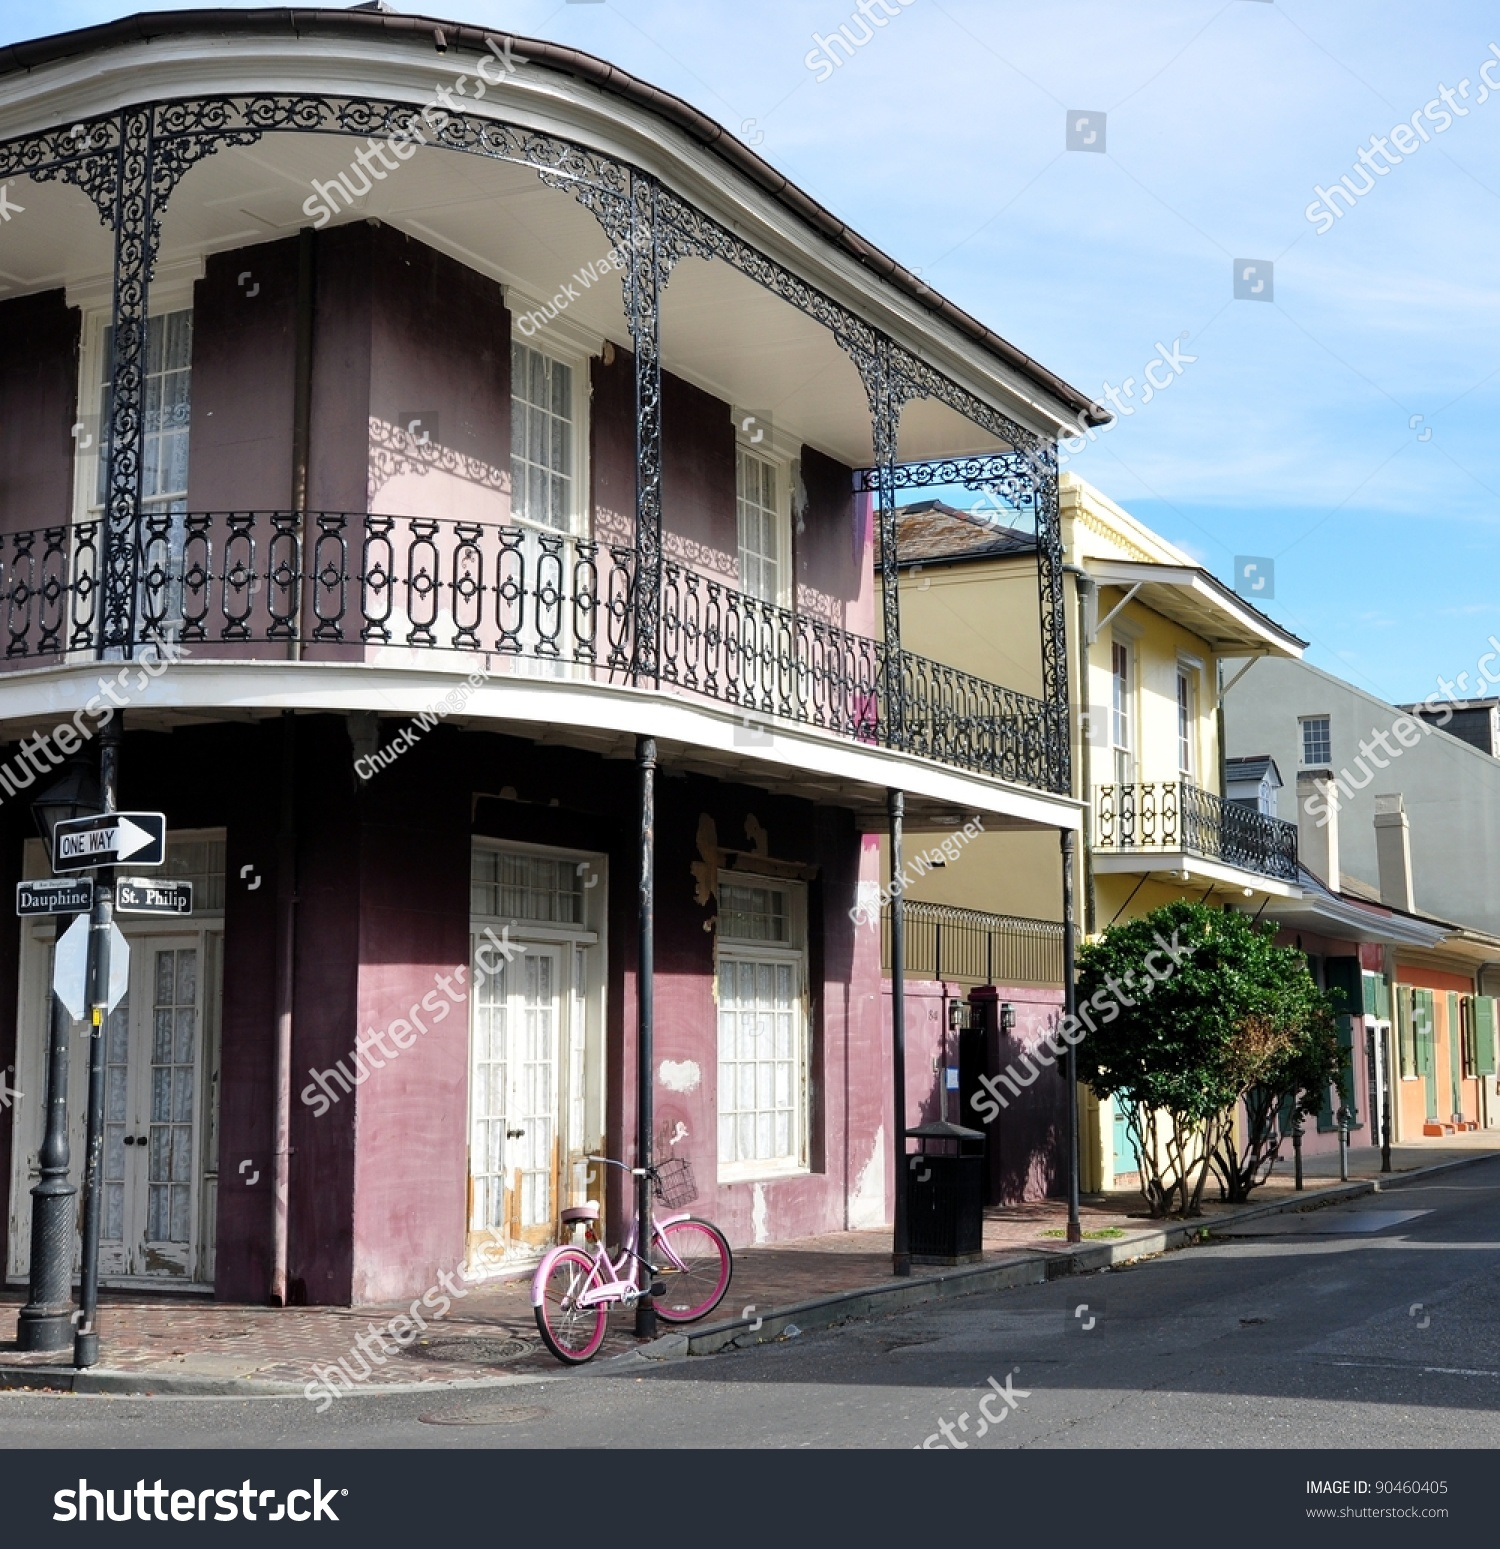 dating scene in new orleans It is not always that evident where to go if you are new to  did you know london has a thriving tv & ts scene  or why not click above for transexual dating.